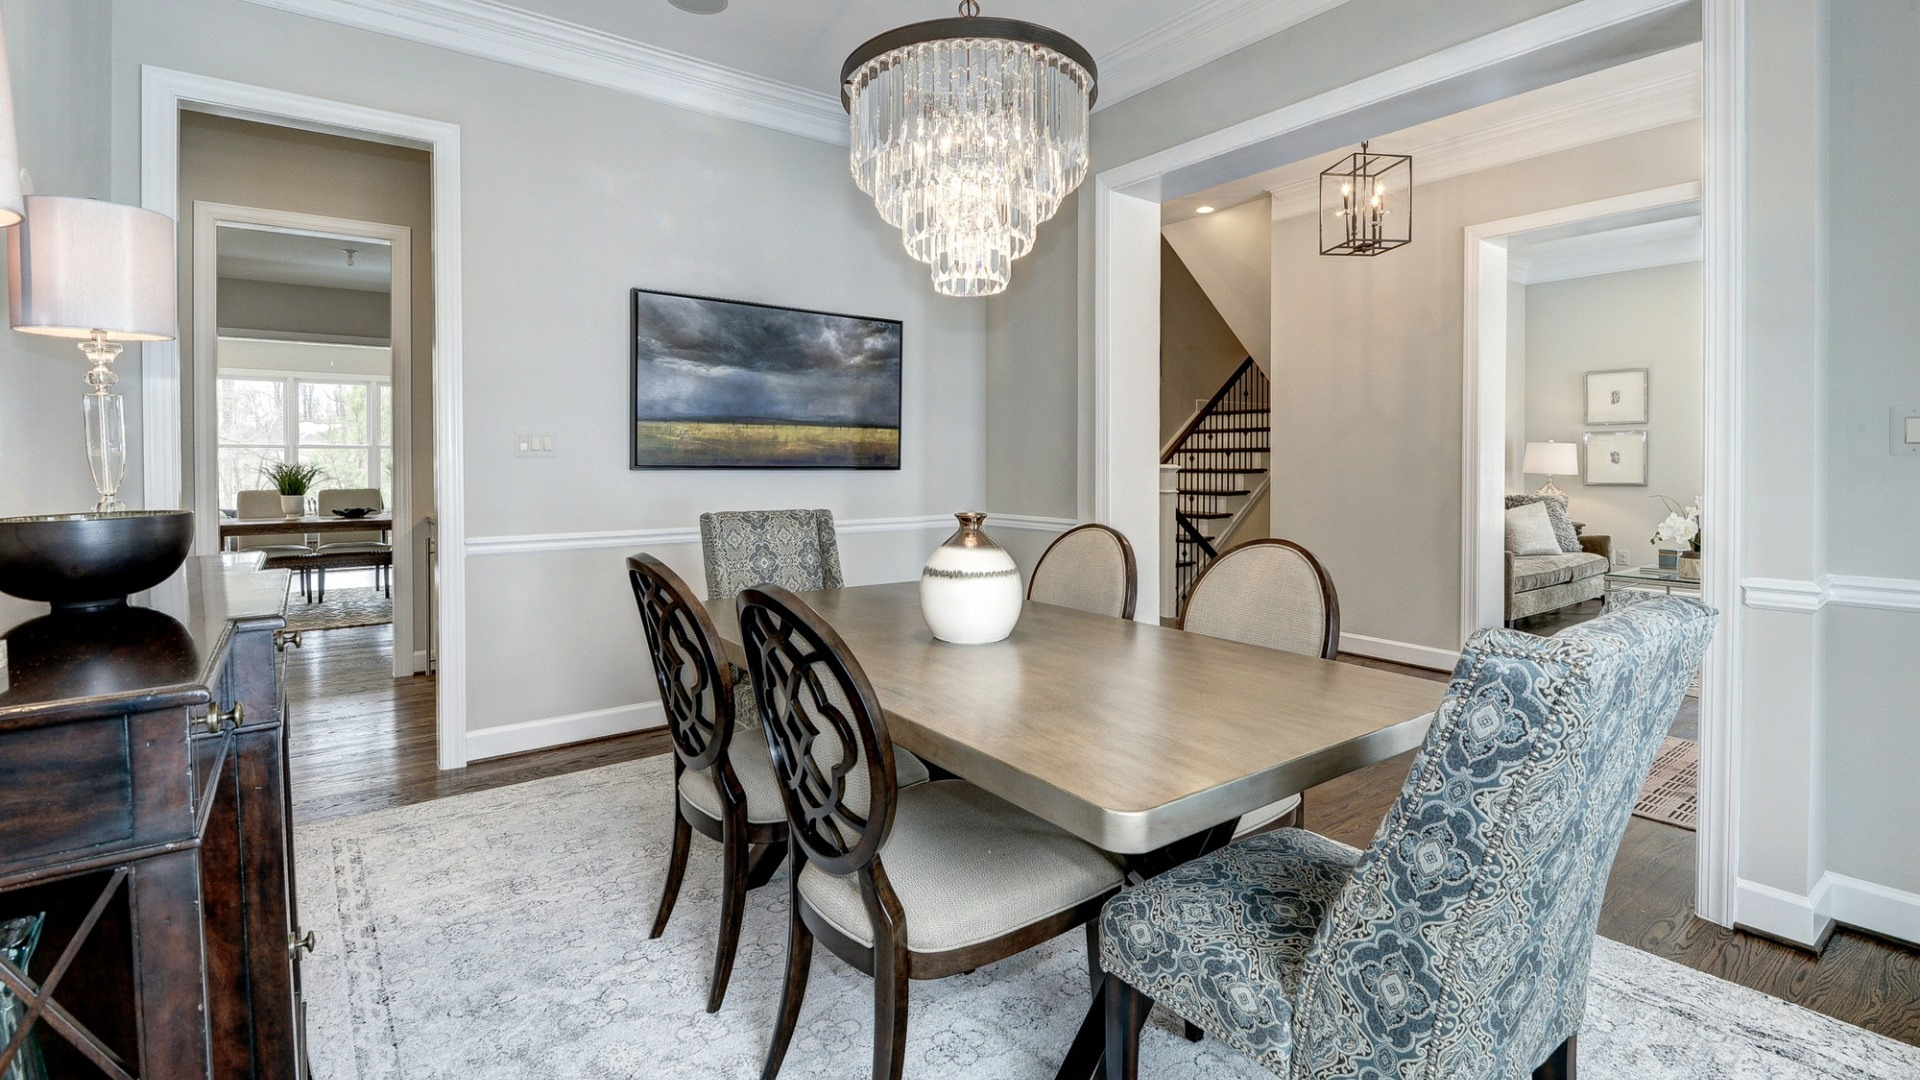 The dining room in a Grayson former model home, which may vary somewhat from the home planned at Vale Crest Homesite 5. Some optional features shown. Please see sales manager for details.